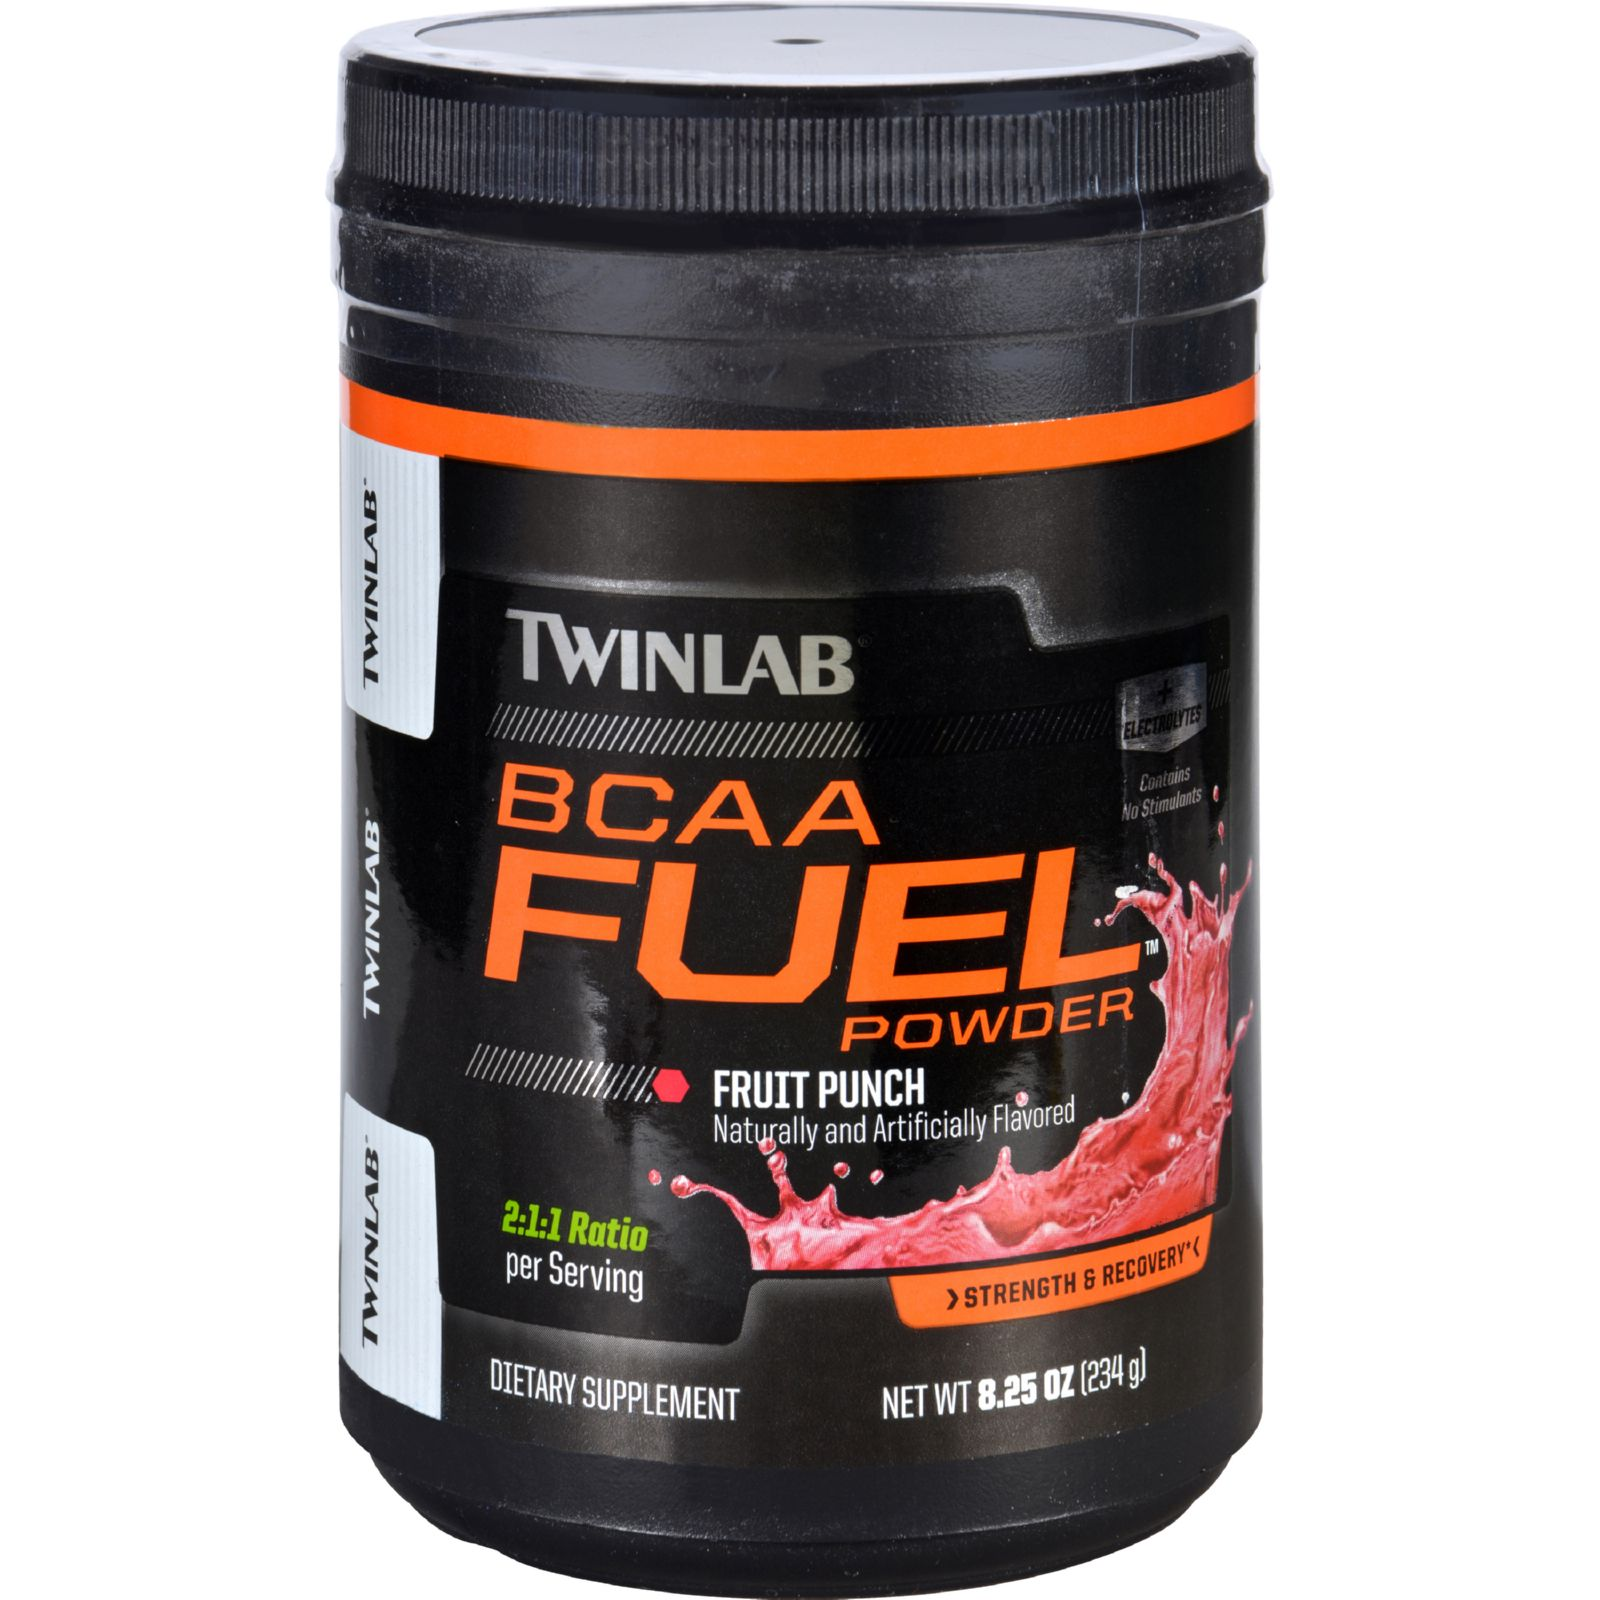 Twinlab Bcaa Fuel - Fruit Punch - Powder - 8.25 Oz